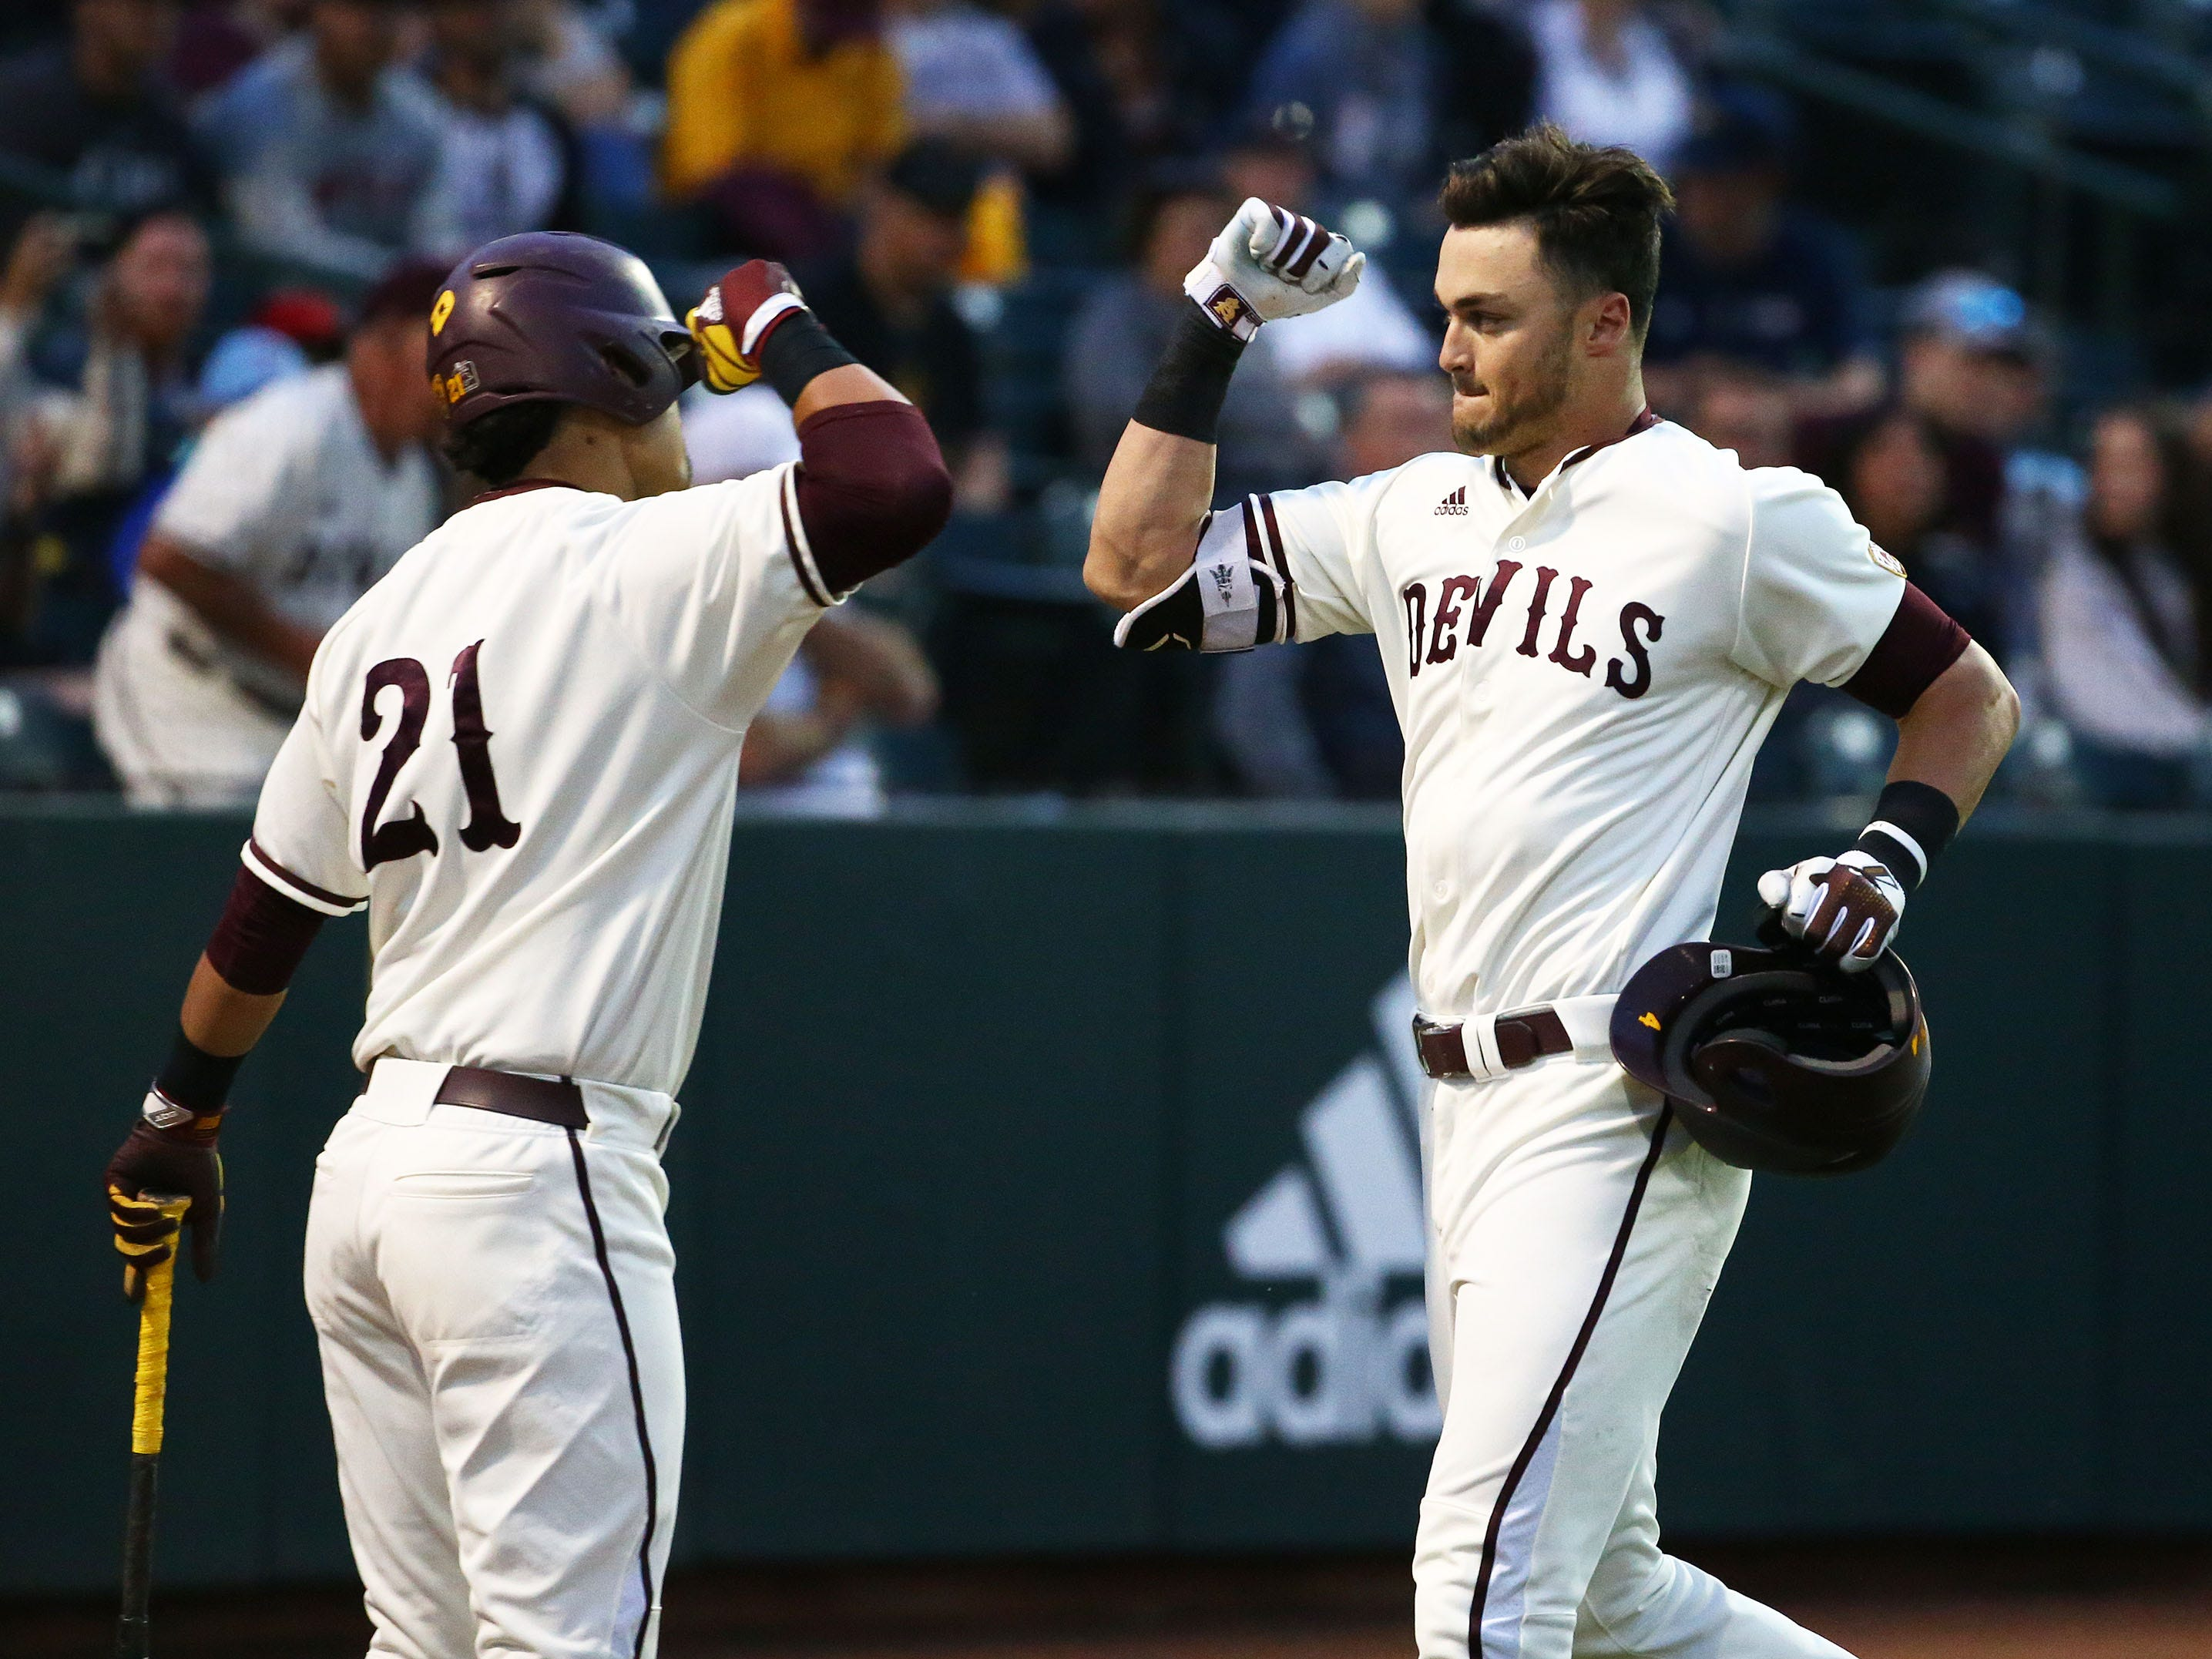 Arizona State Sun Devils Hunter Bishop (right) fist-pumps with Carter Aldrete (21) after hitting a solo home run against the California Baptist Lancers in the first inning at Phoenix Municipal Stadium on Mar. 20, 2019 in Phoenix, Ariz.